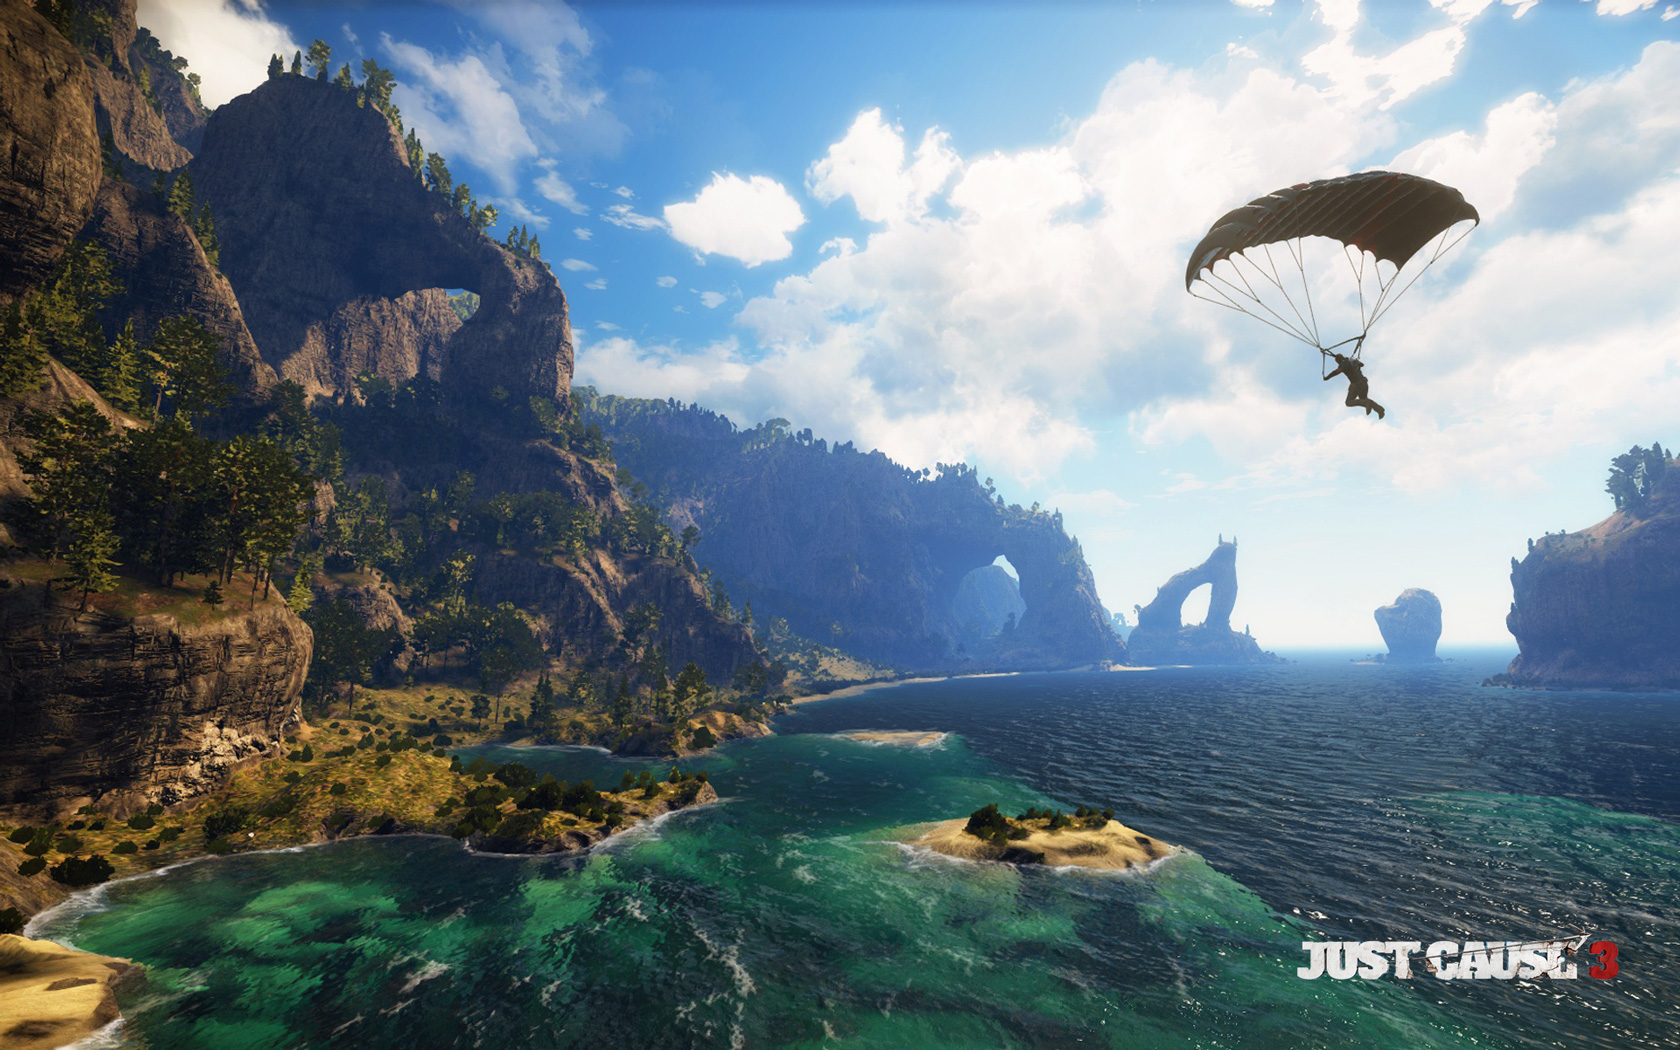 Just Cause 3 Wallpaper in 1680x1050